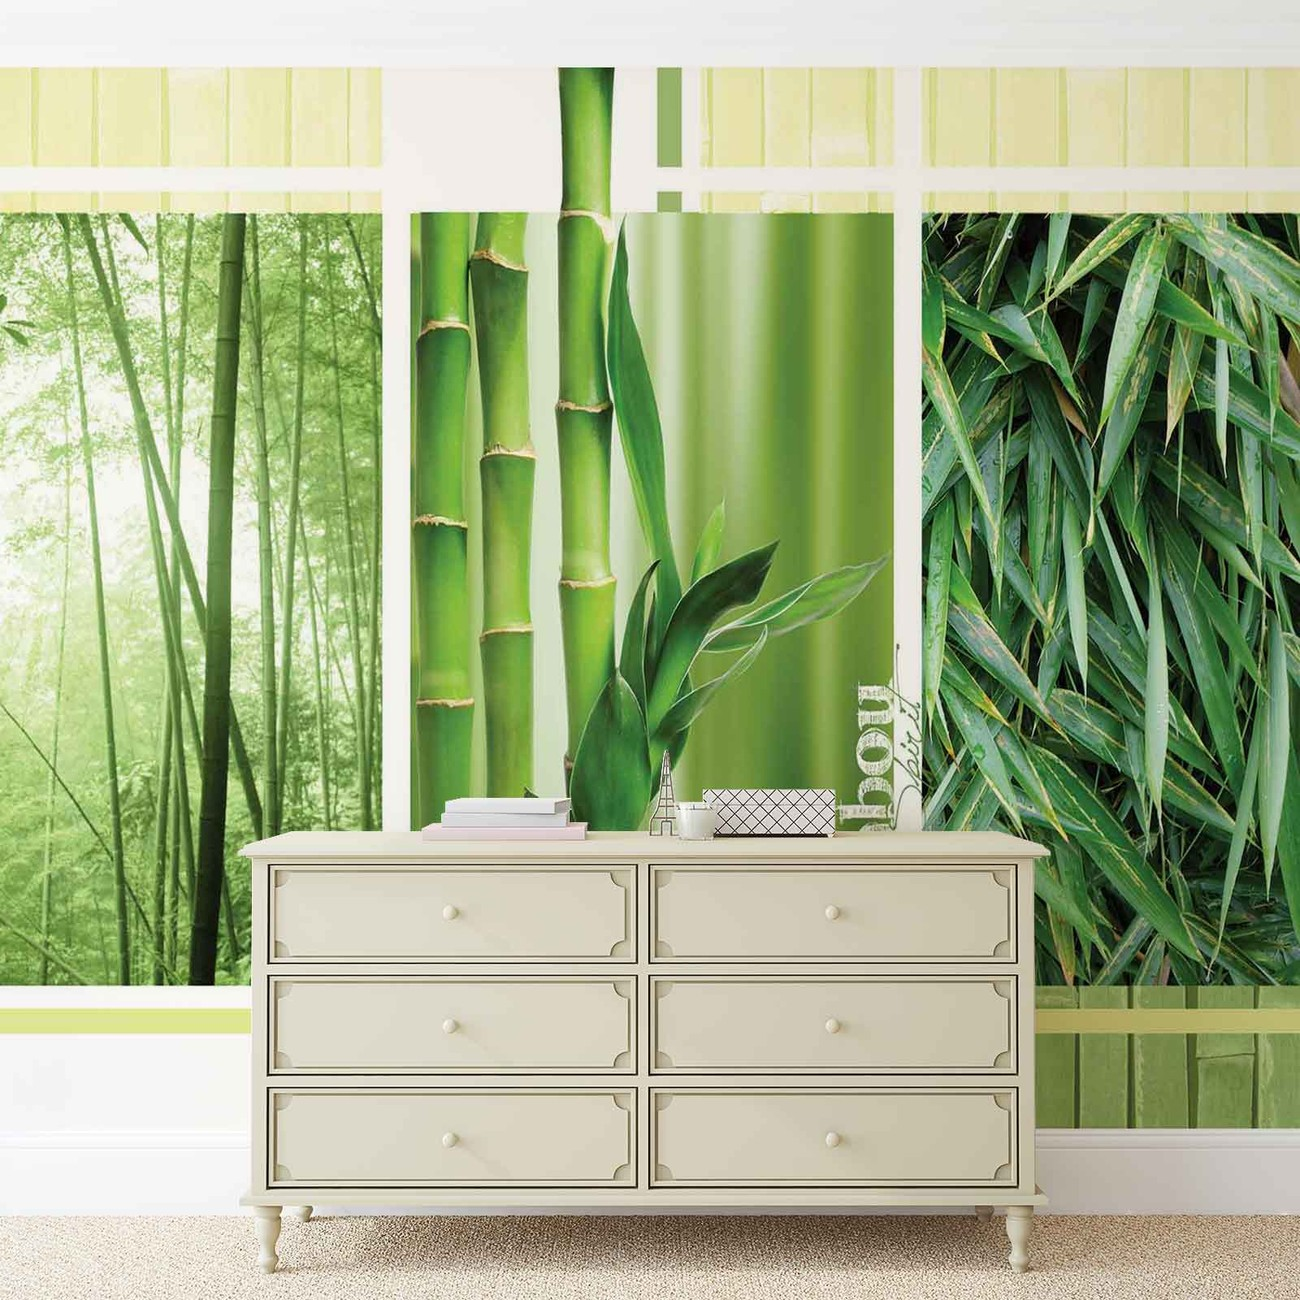 Bamboo forest nature wall paper mural buy at europosters for Bamboo wall mural wallpaper